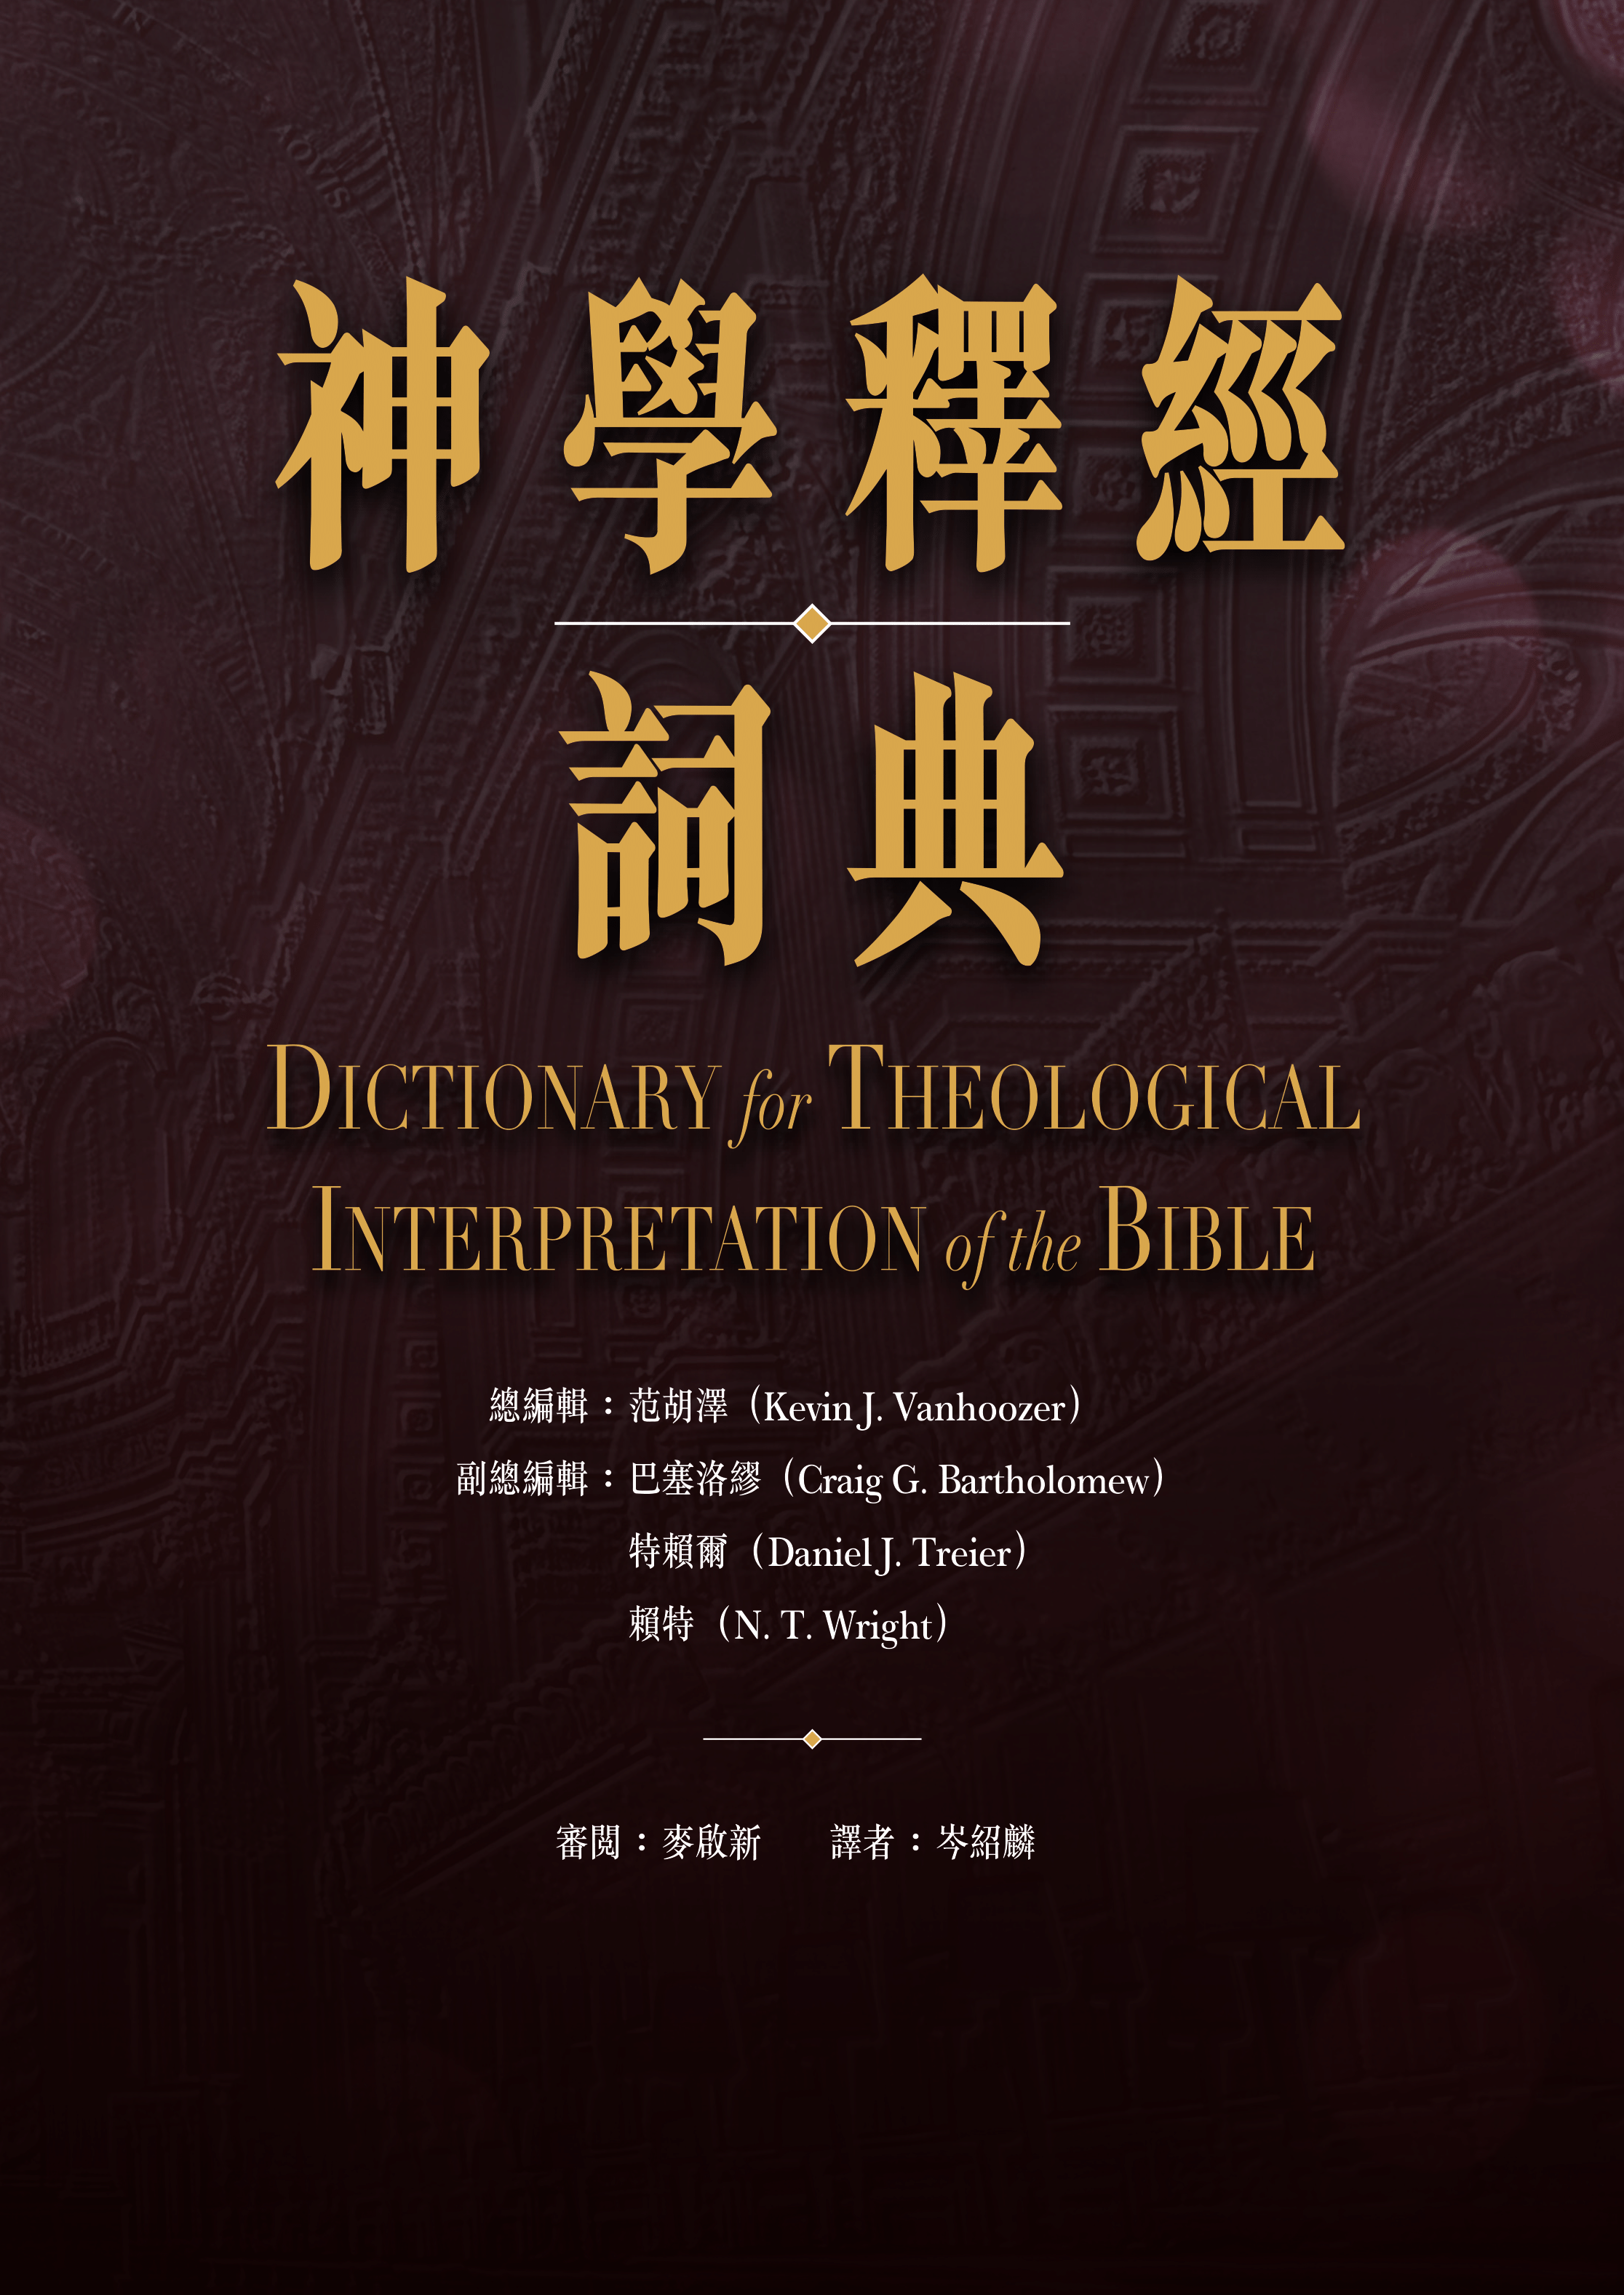 神學釋經詞典(繁體) Dictionary for Theological Interpretation of the Bible (Traditional Chinese)